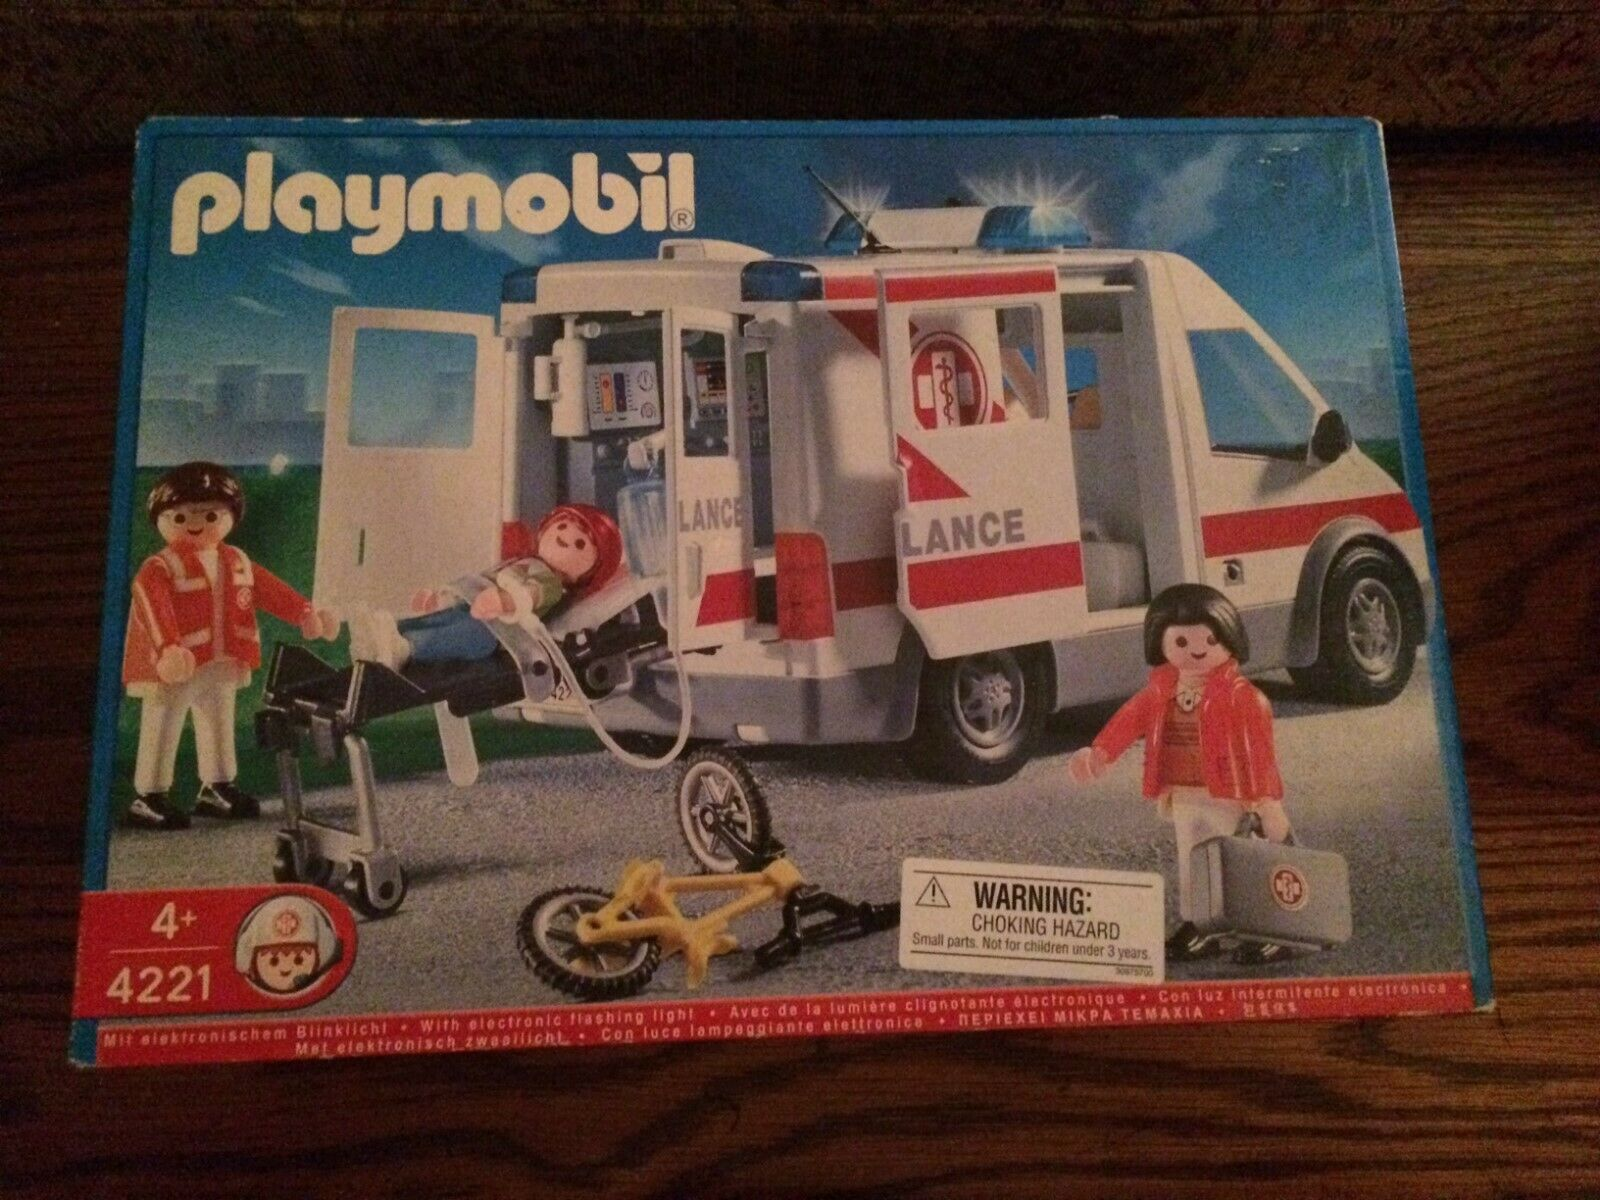 PLAYMOBIL 4221 Ambulance from the Fire  Rescue Series New in Box